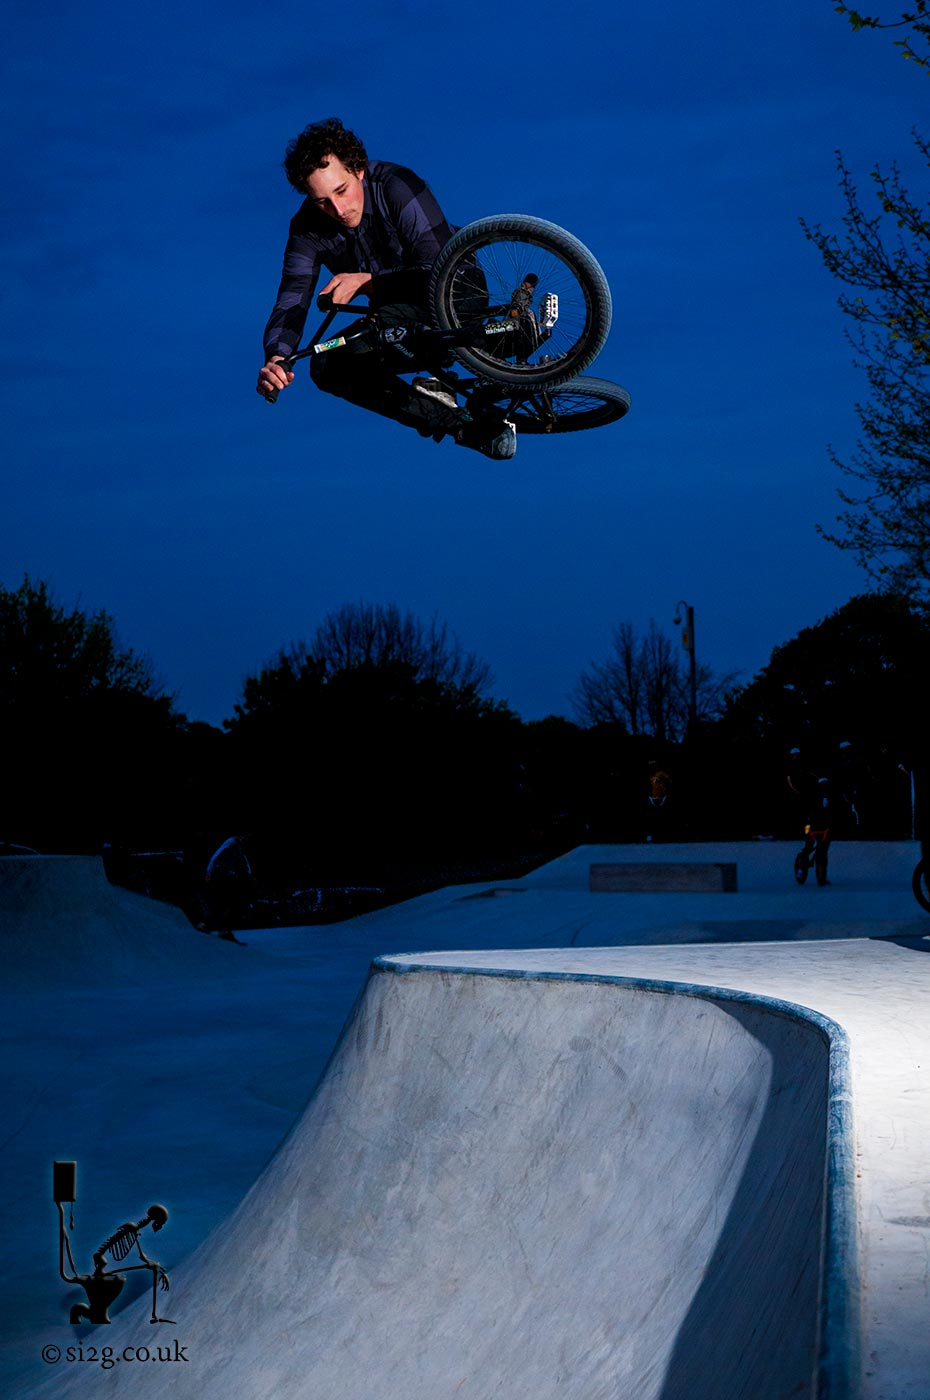 BMX Hip Transfer - Robin Fenlon transfers over the hip at the opening of Dorchester skatepark.